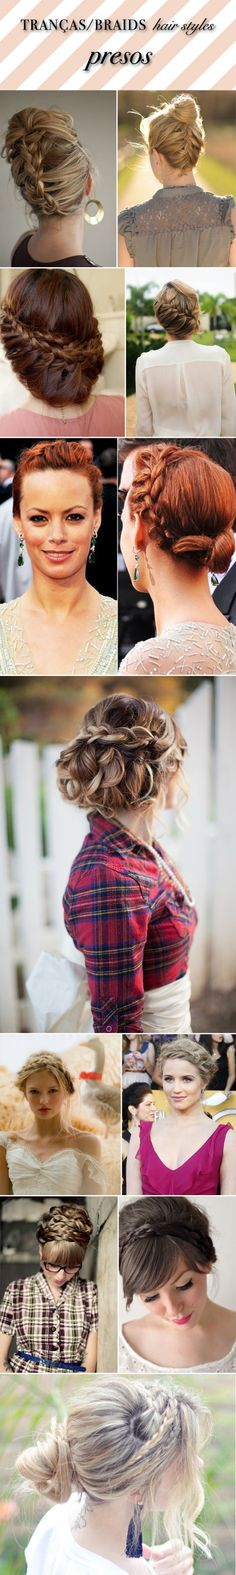 I love braided hairstyles. I cannot wait for my hair to be long enough to do this!